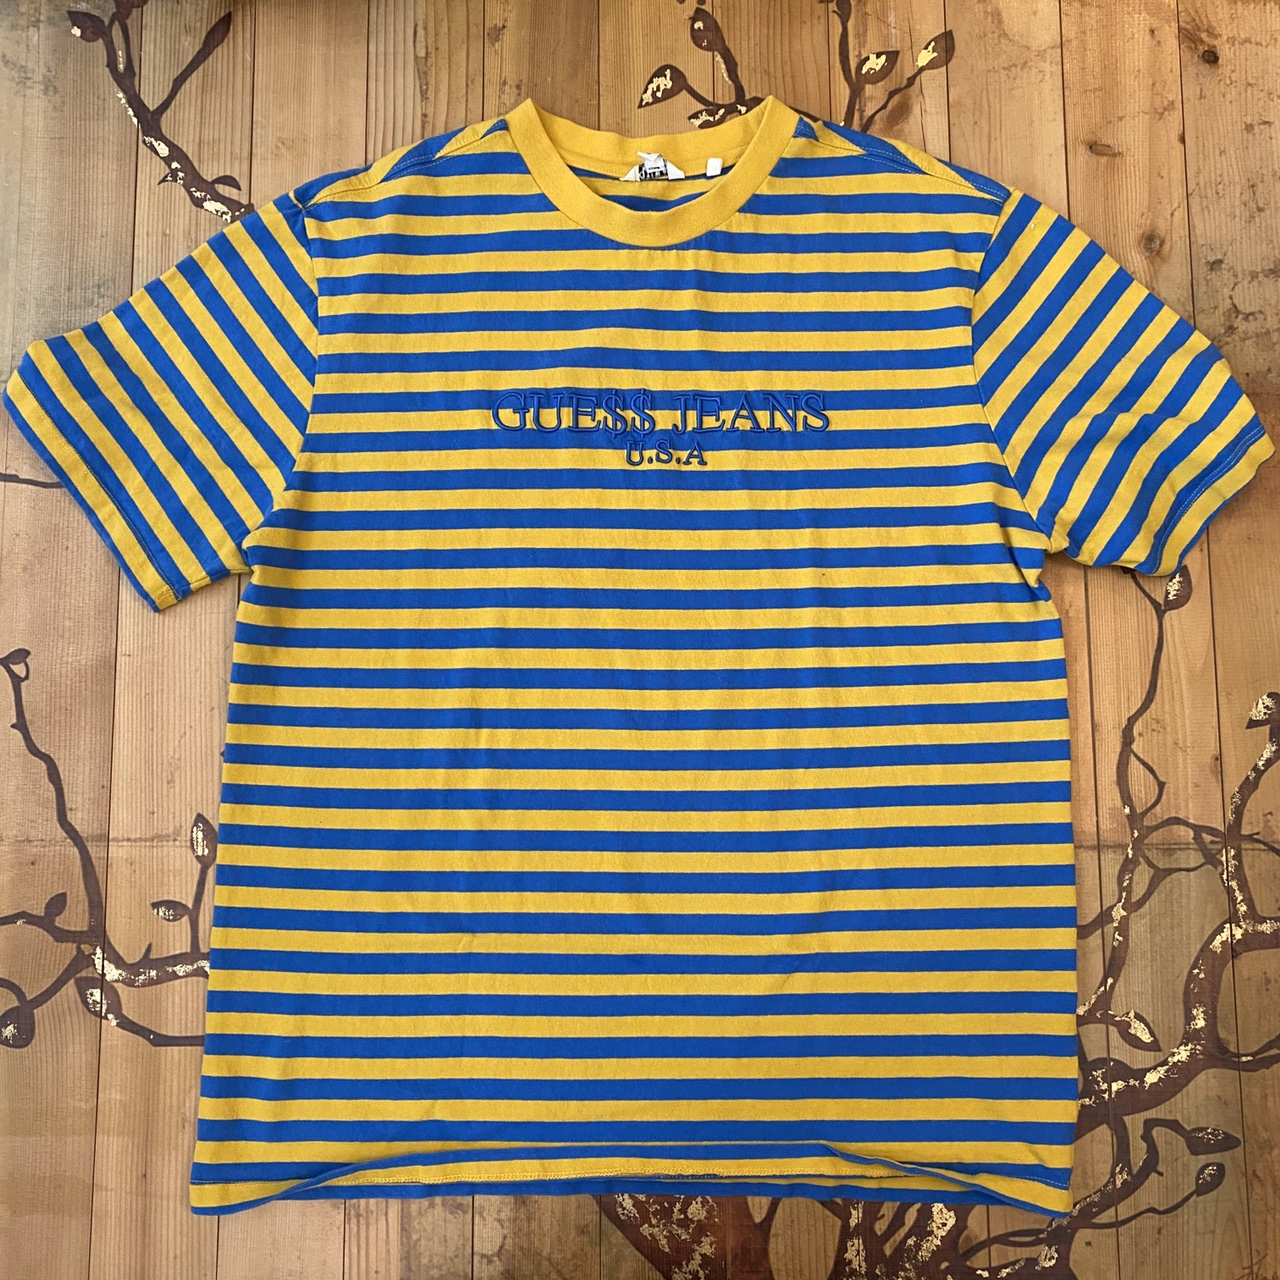 Product Image 1 - Guess ASAP rocky striped shirt